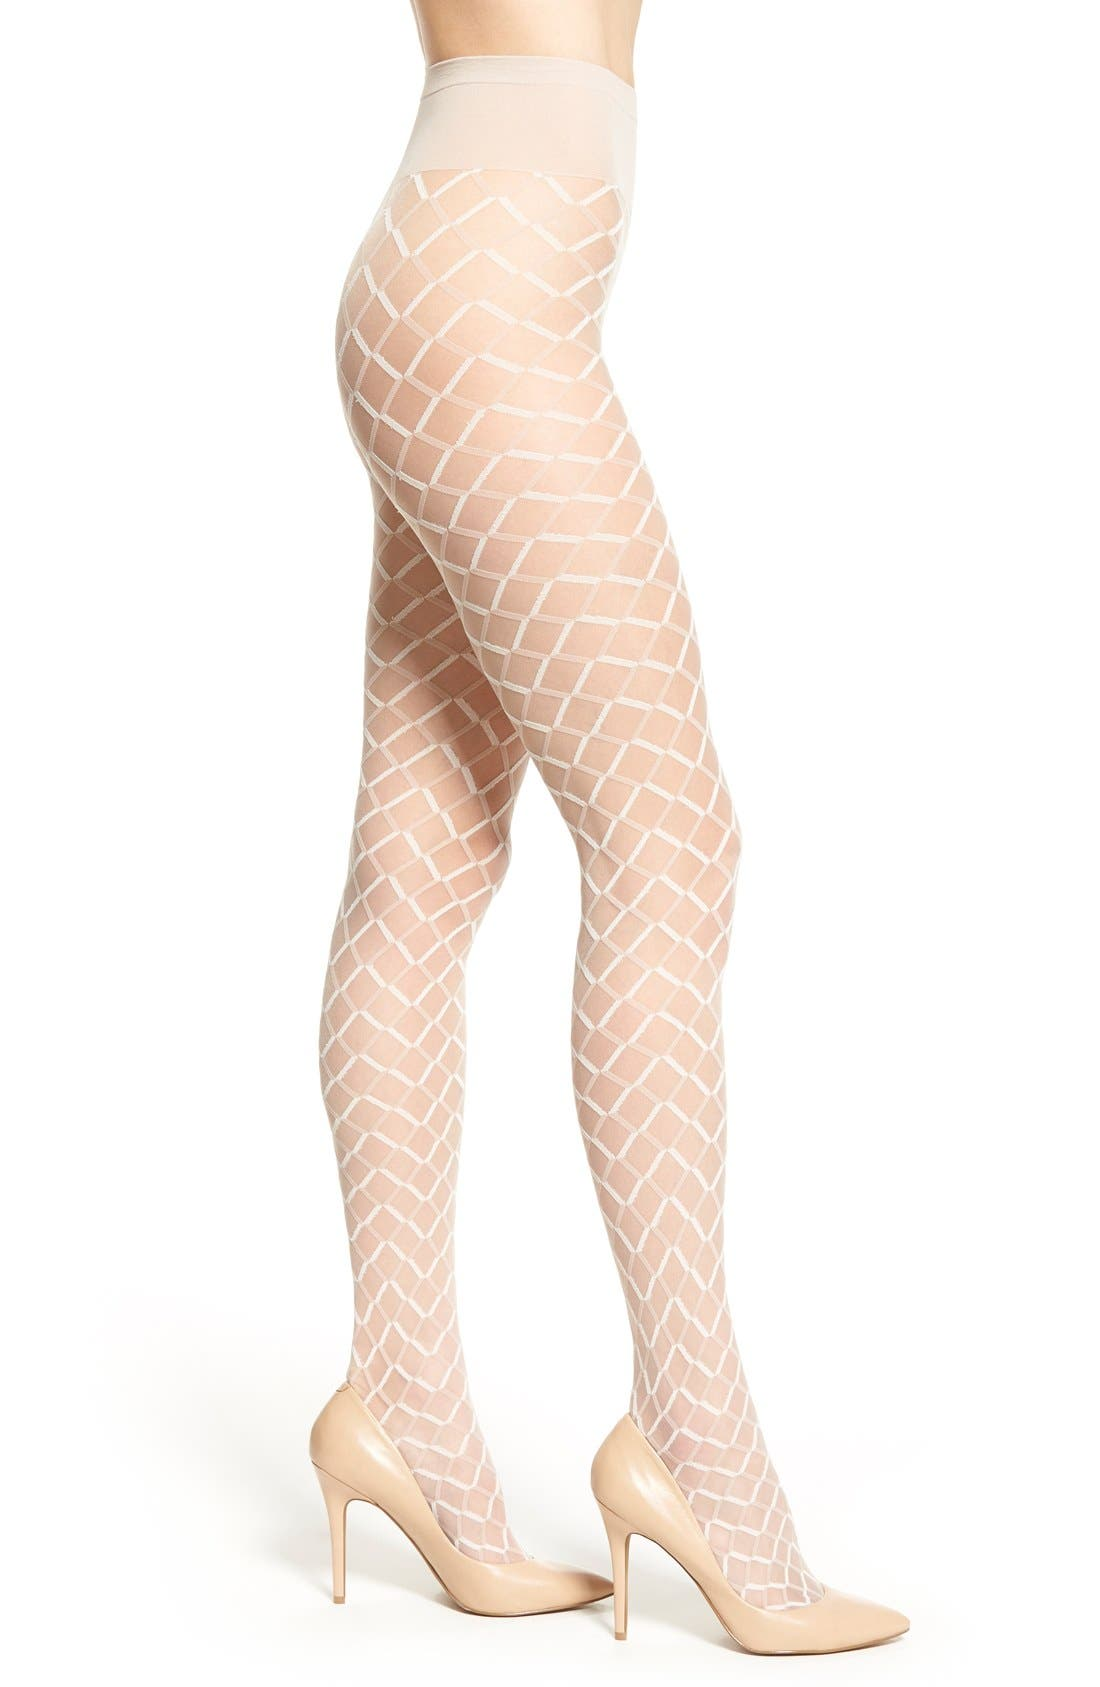 Alternate Image 1 Selected - Oroblu 'Collant Funny' Geometric Pattern Tights